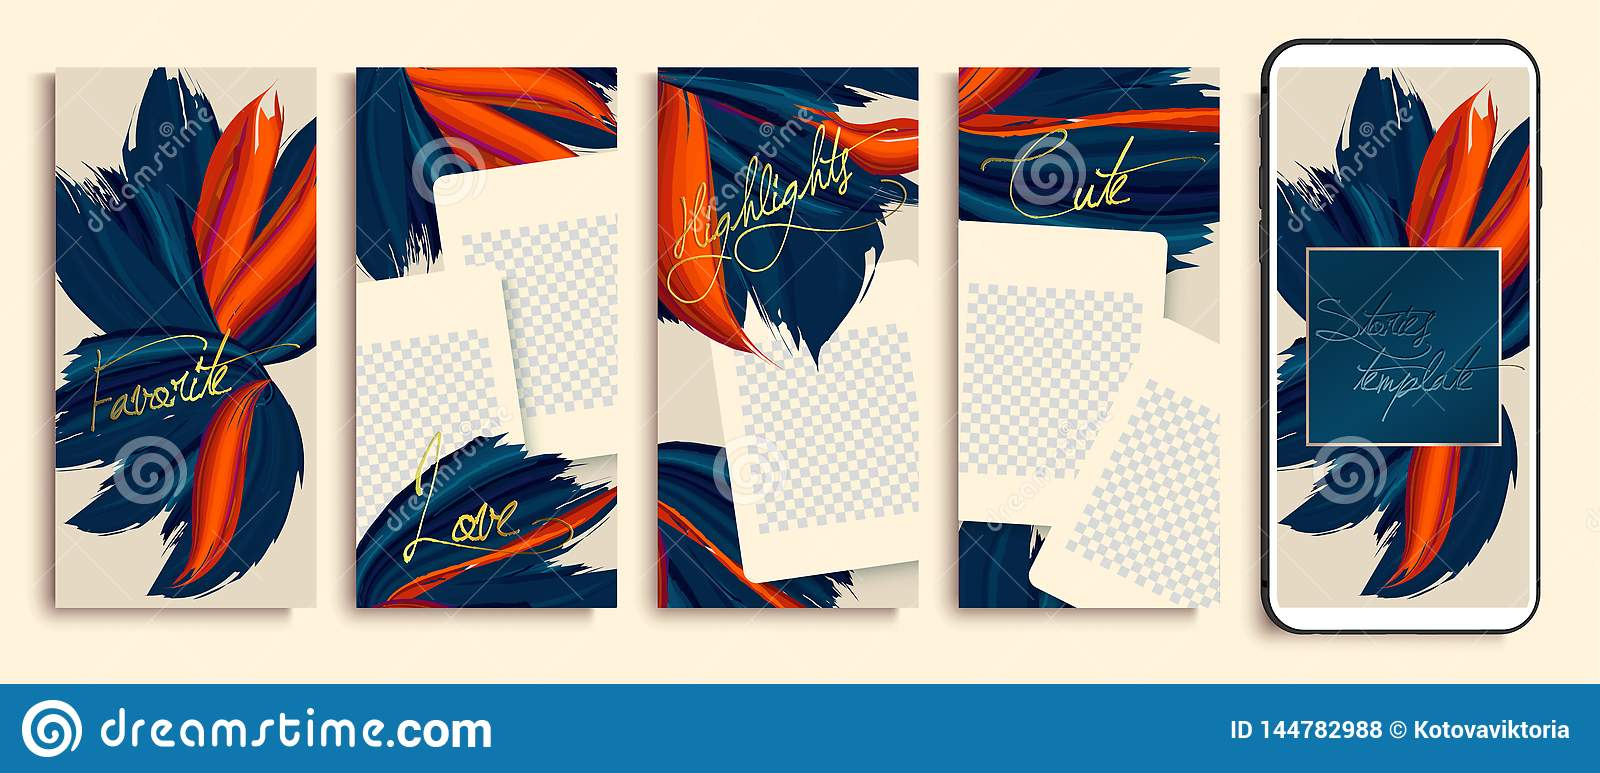 Trendy Editable Stories Templates With Blue And Orange Flowers Vector Illustration Instagram Highlight Covers Insta Fashion Stock Vector Illustration Of Frame Fashion 144782988